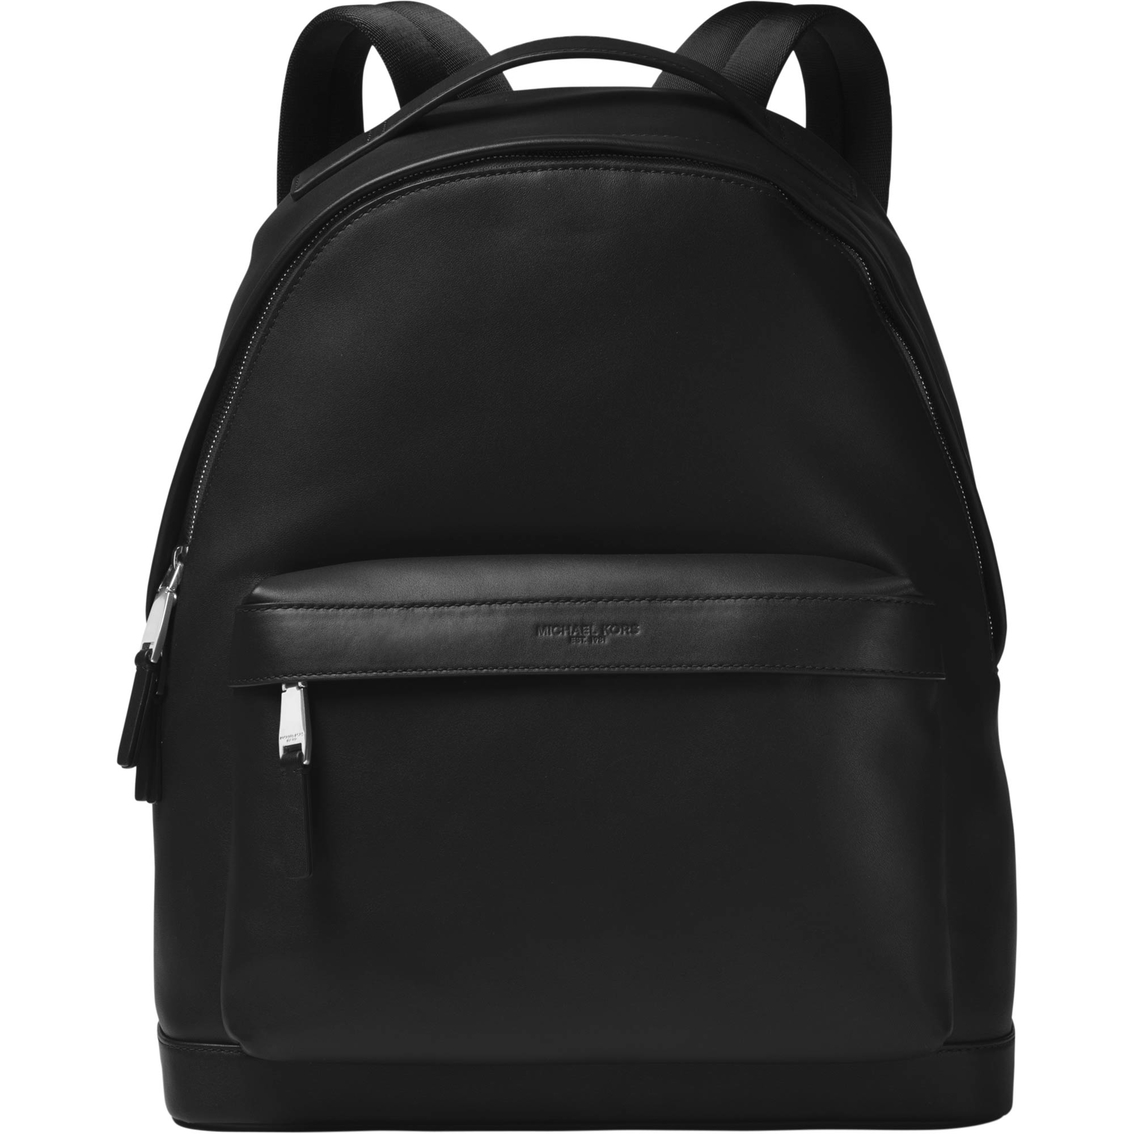 2281e7b45e40 Michael Kors Odin Backpack Black | Accessories | Shop The Exchange